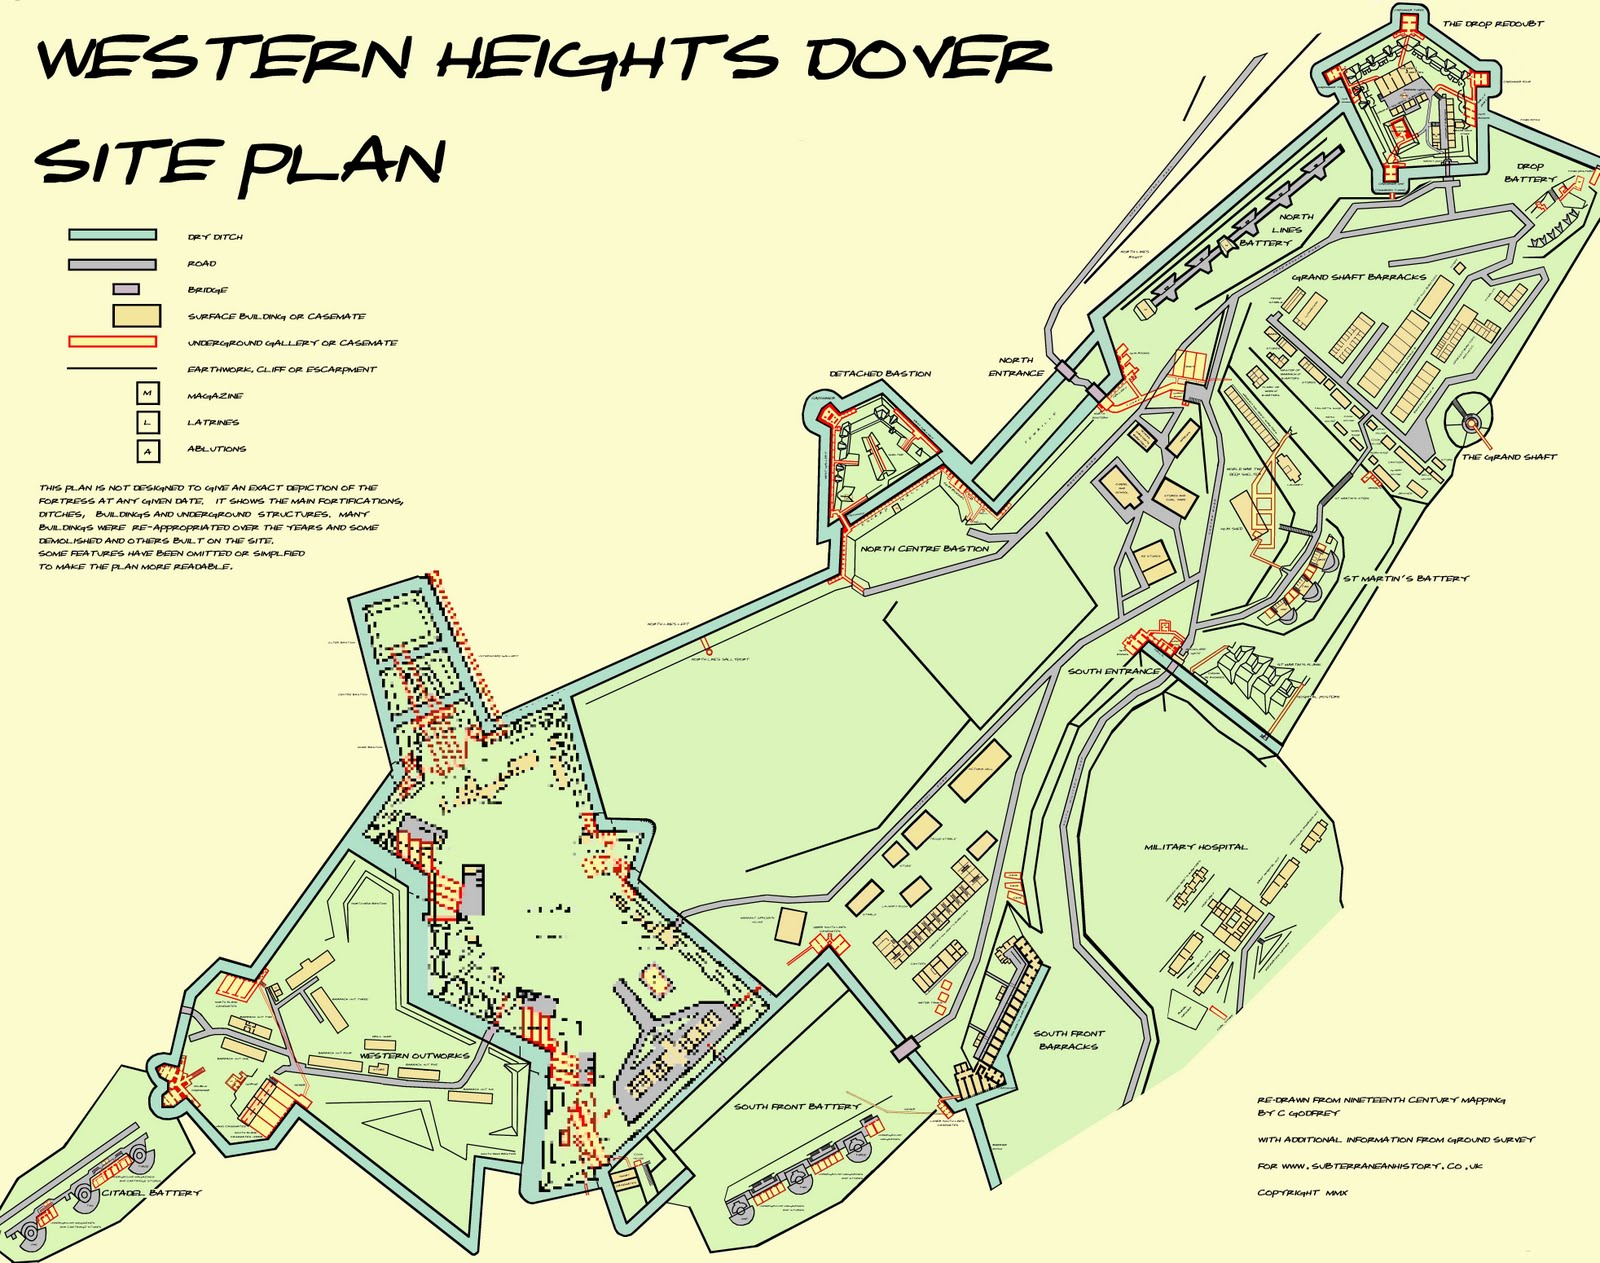 Subterranean History Western Heights Dover